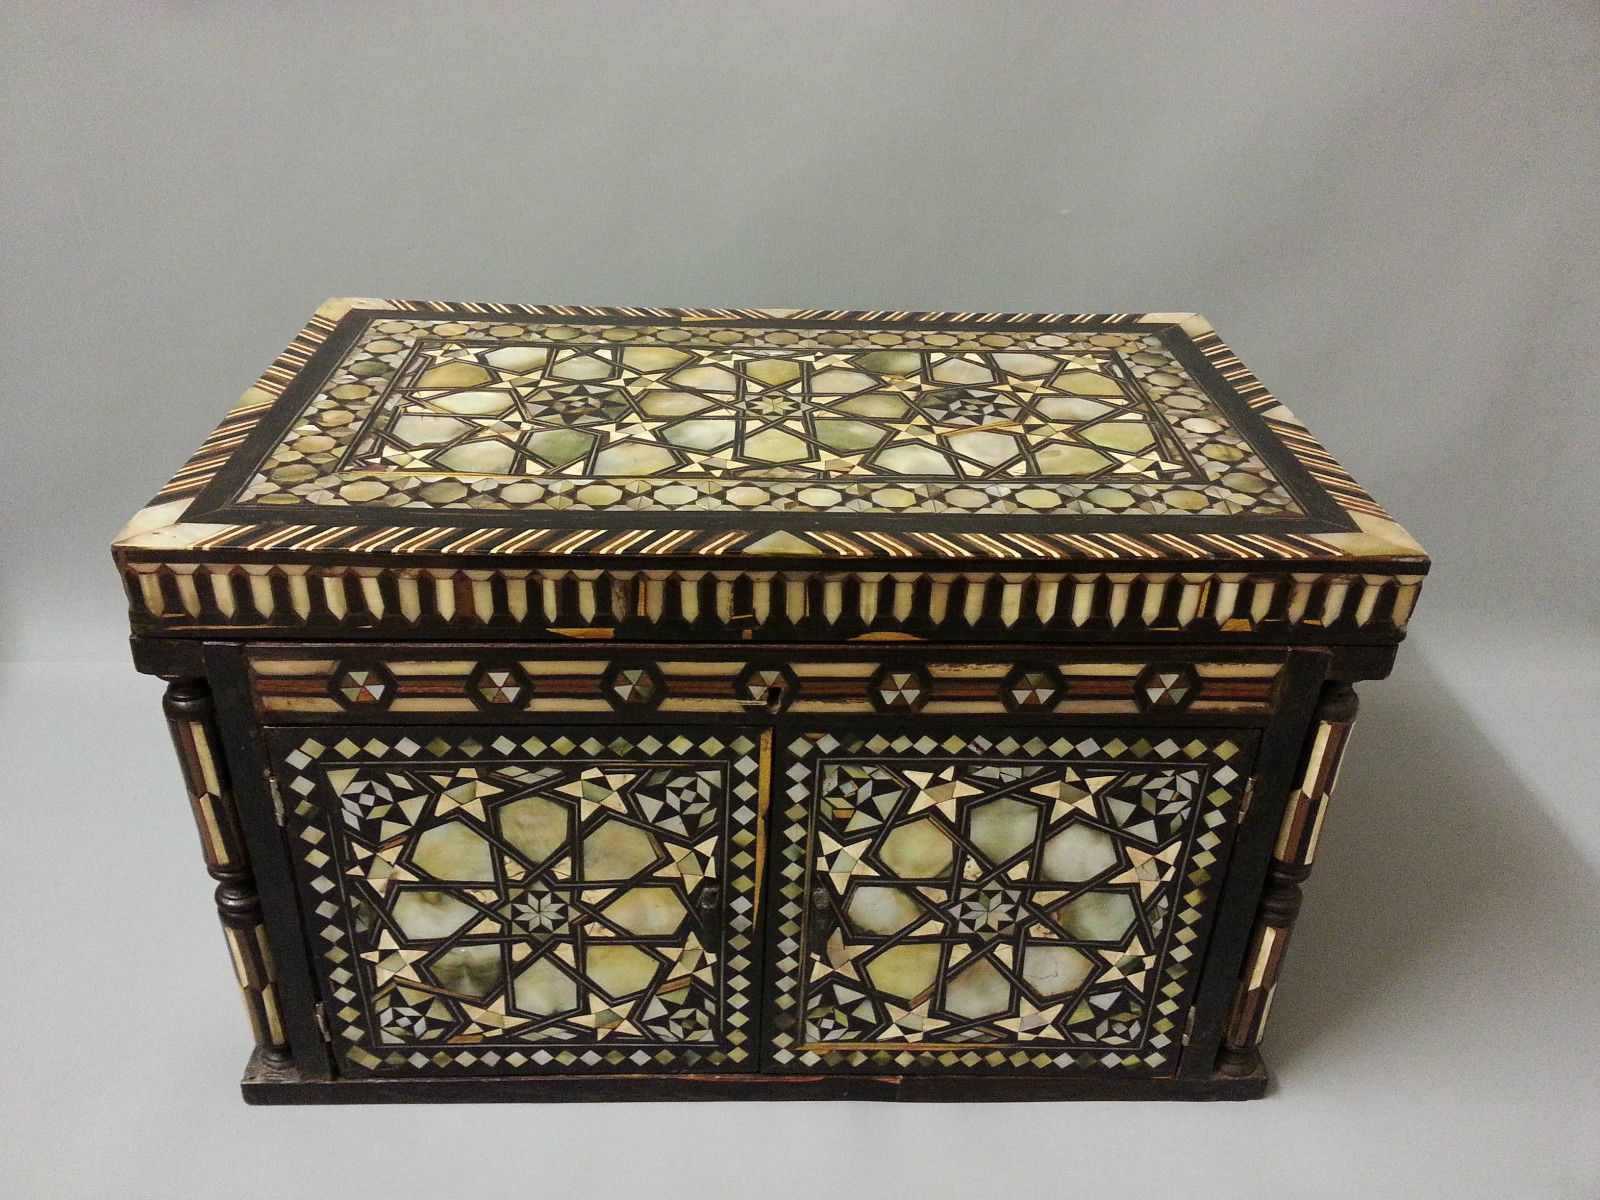 Very Rare Persian Islamic Ottoman Arabic Wooden Box Inlaid With Mother Of Pearl Wooden Boxes Wooden Decorative Boxes